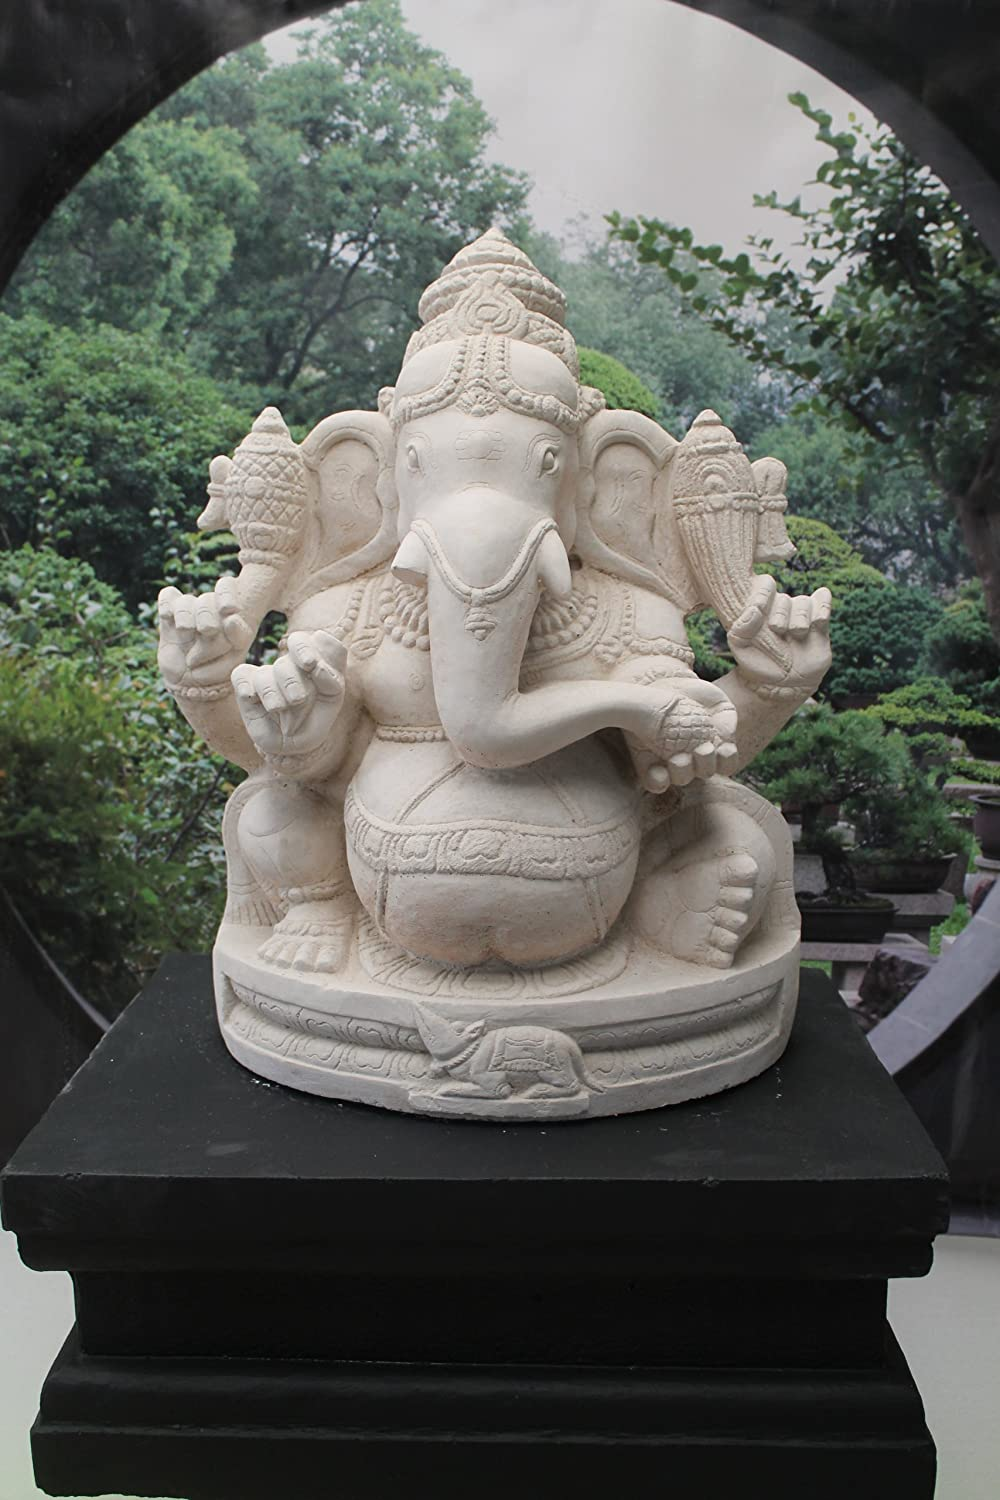 Awesome Ornate Ganesh Stone Garden Ornament Statue And Plinth: Amazon.co.uk: Garden  U0026 Outdoors